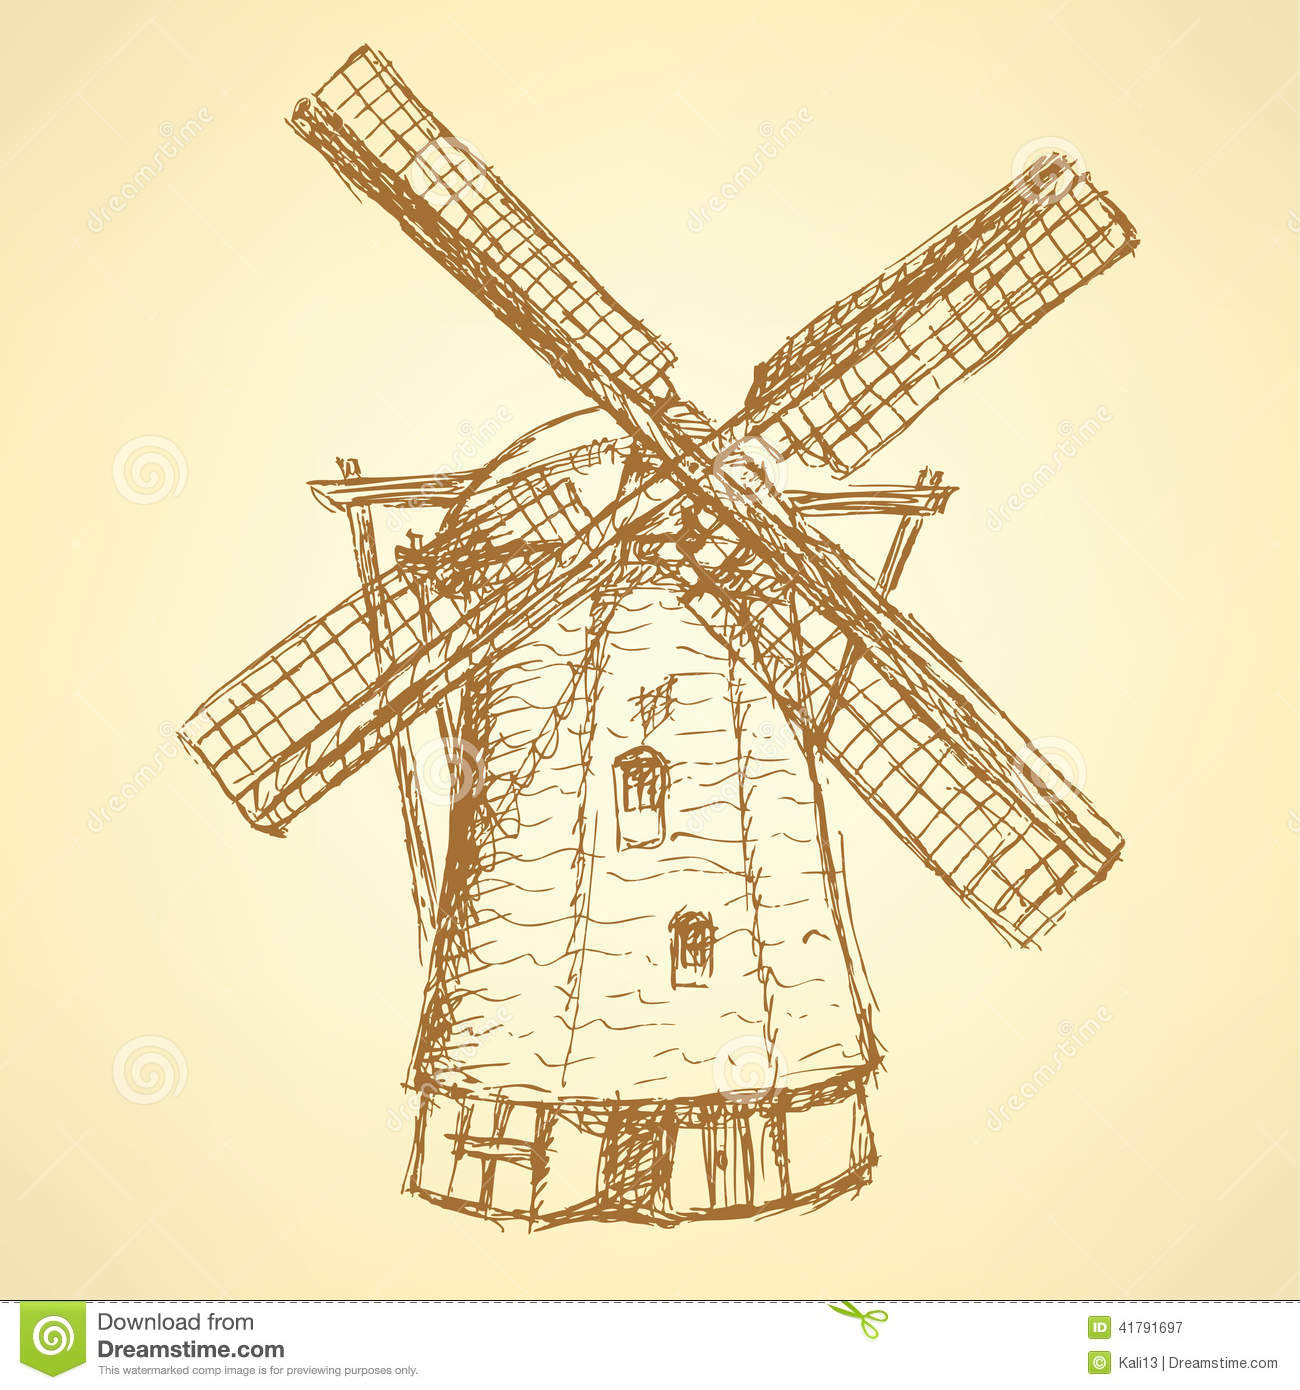 Sketch Holand Windmill, Vector Vintage Background Stock Vector - Image ...